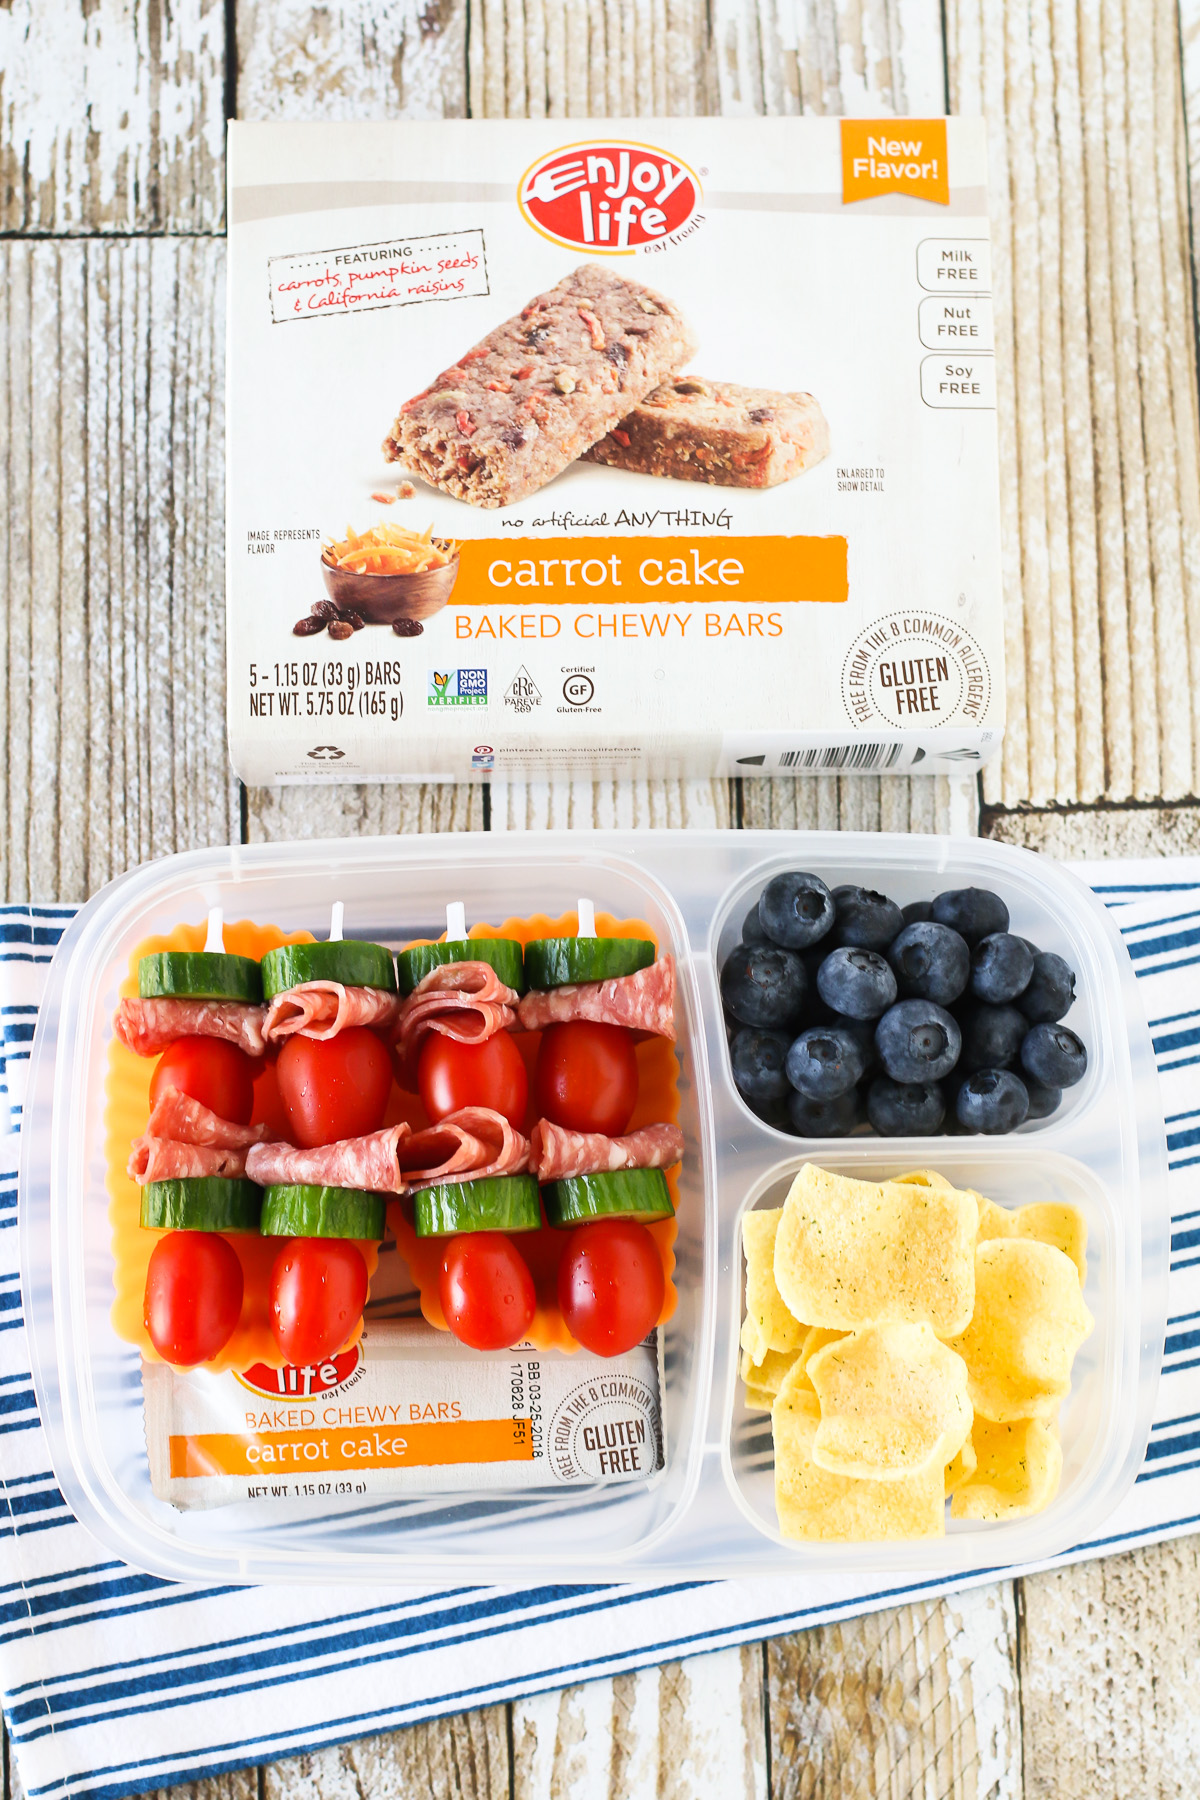 Easy Allergen Free School Lunches. Tomato, cucumber and salami skewers, served with an Enjoy Life Baked Chewy Bar.